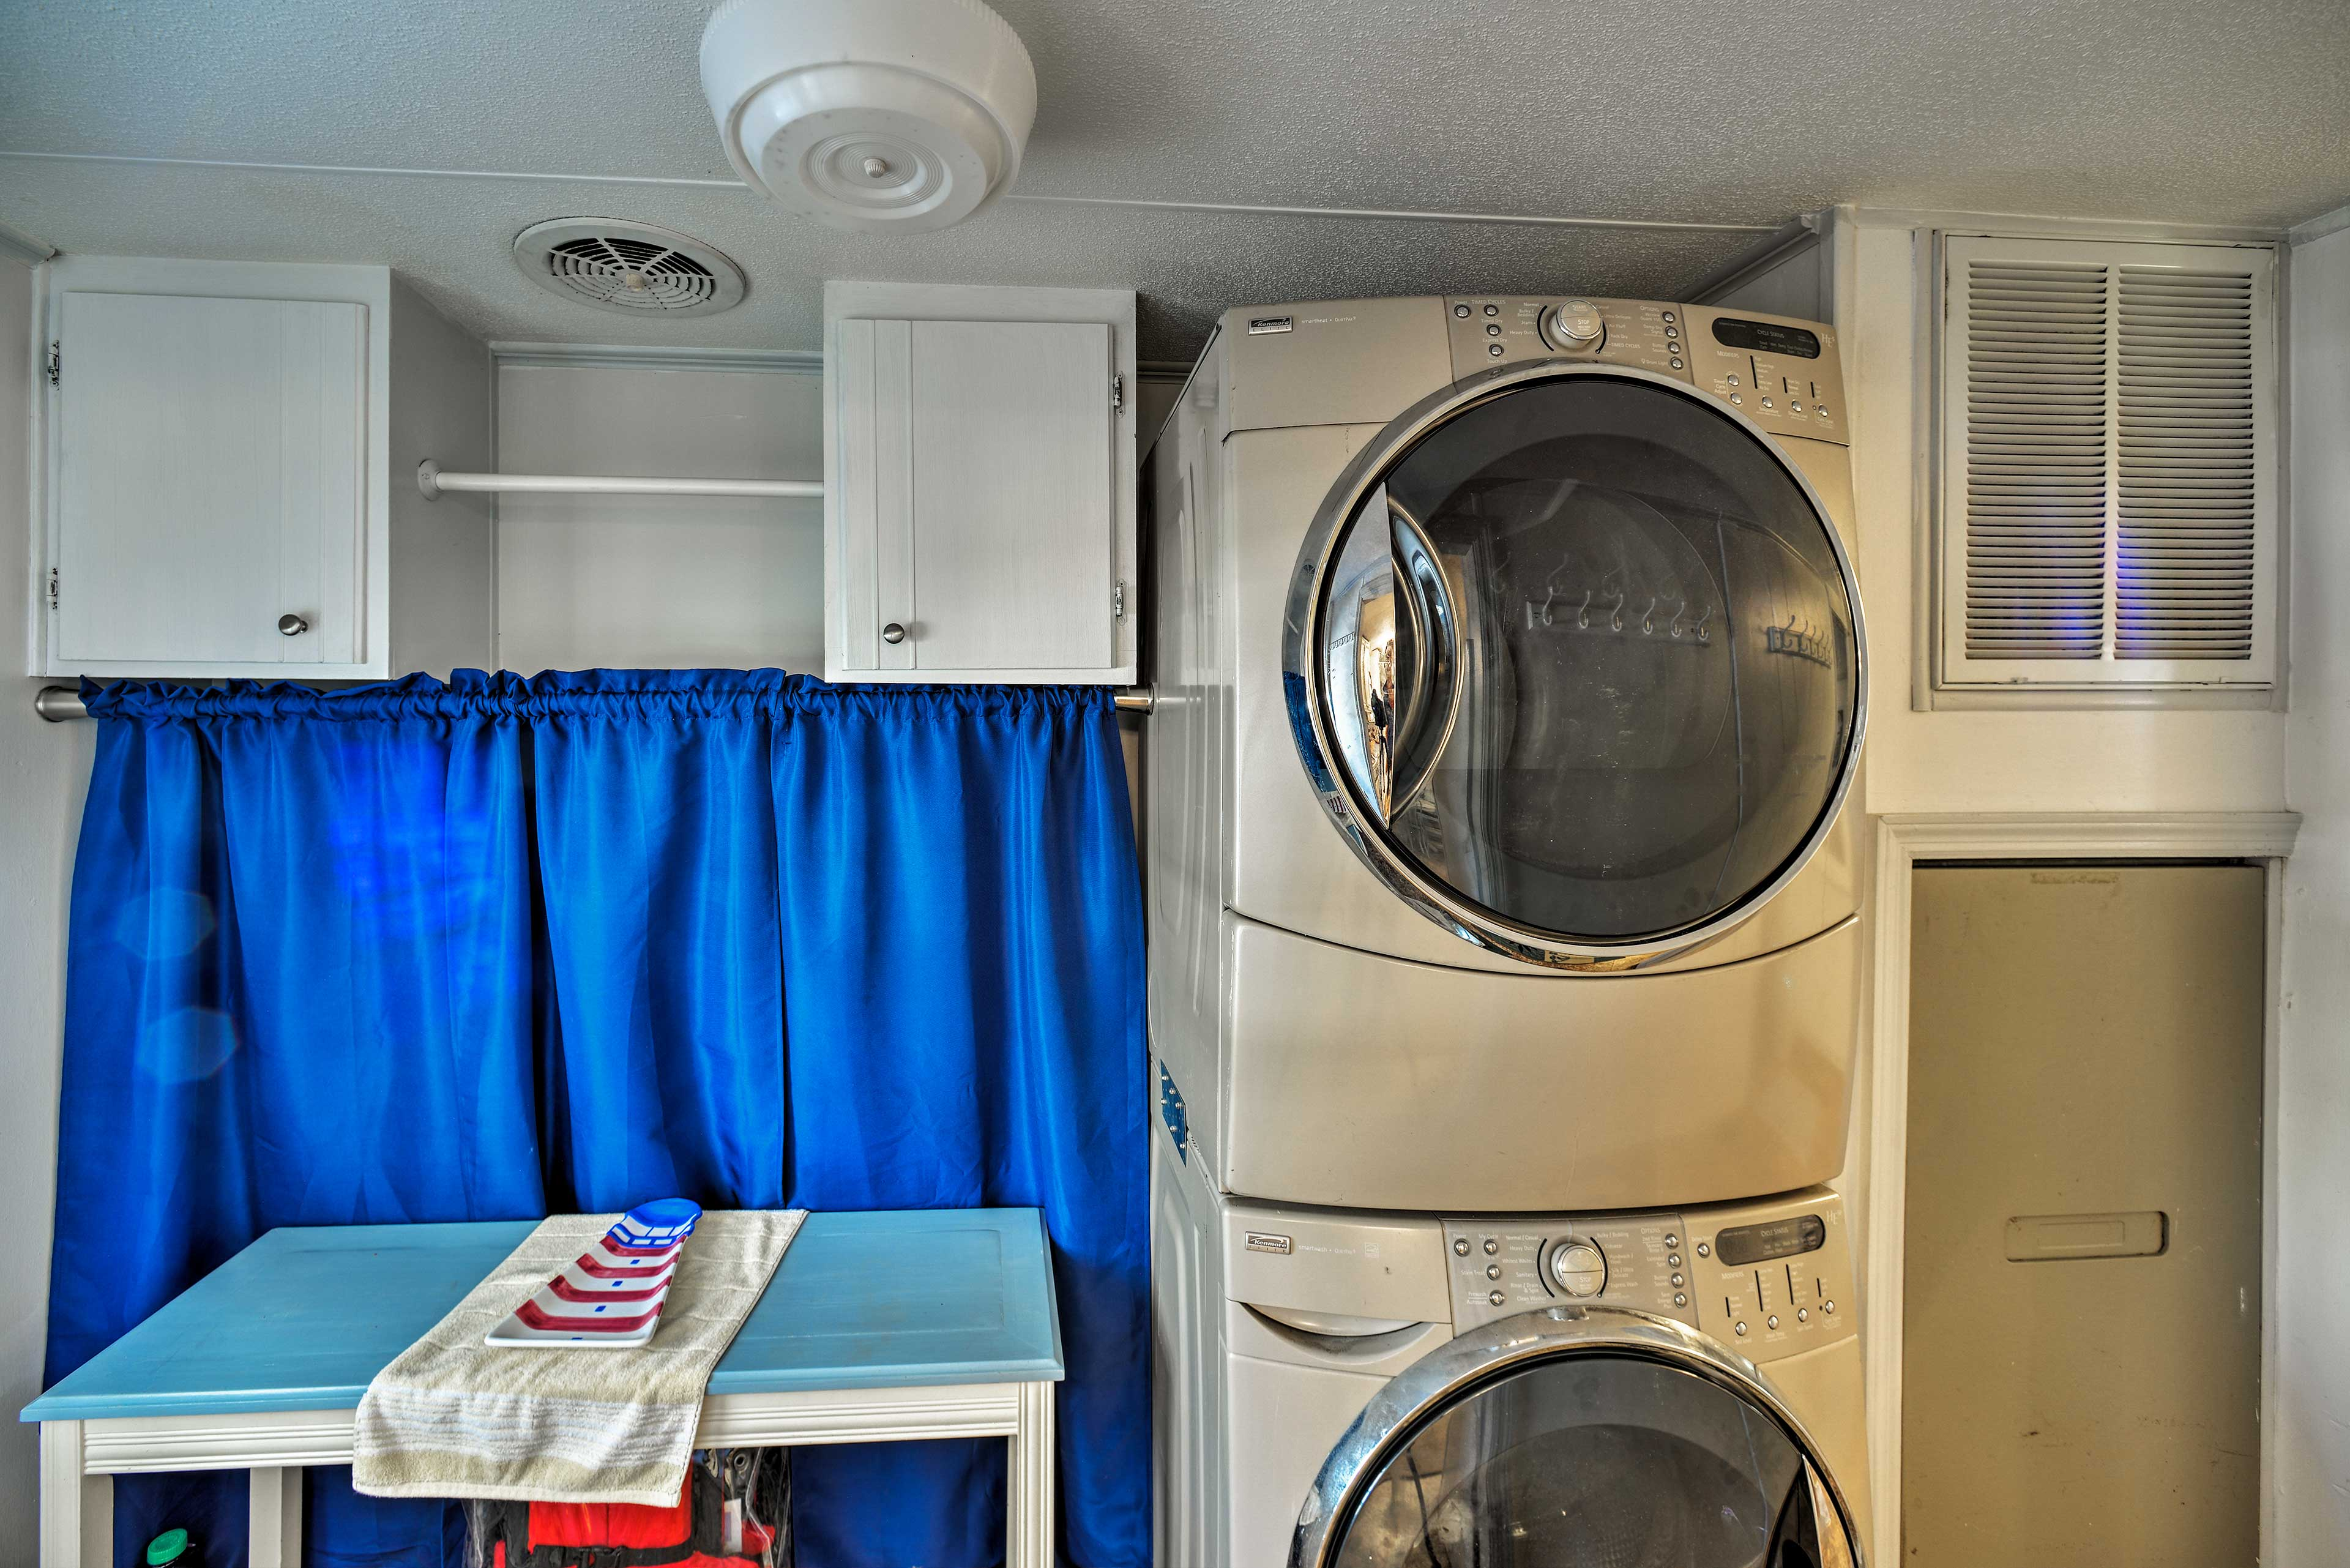 The property features all the comforts and amenities of home.